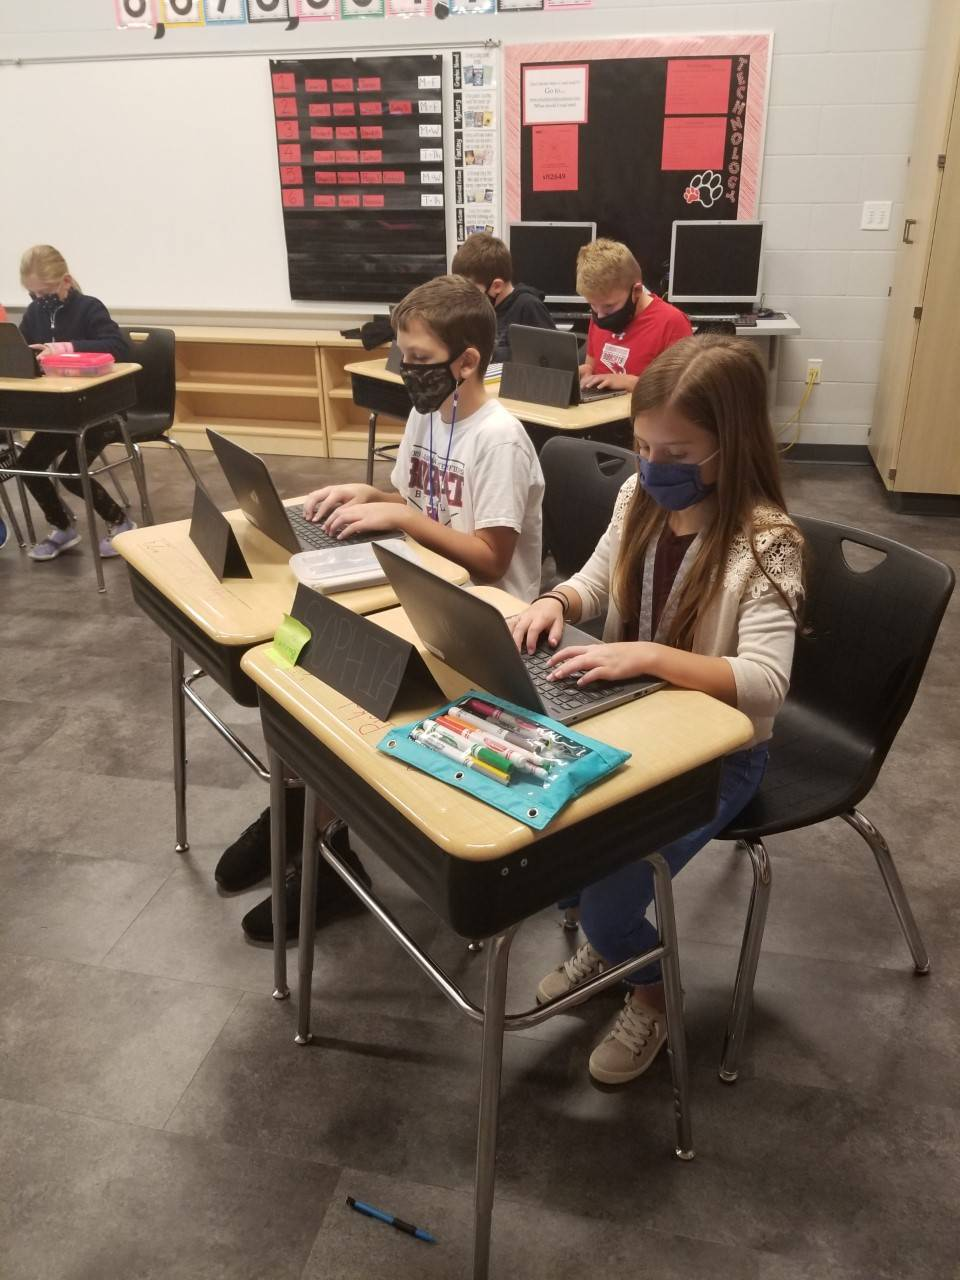 Two 5th grade students using lap top computers